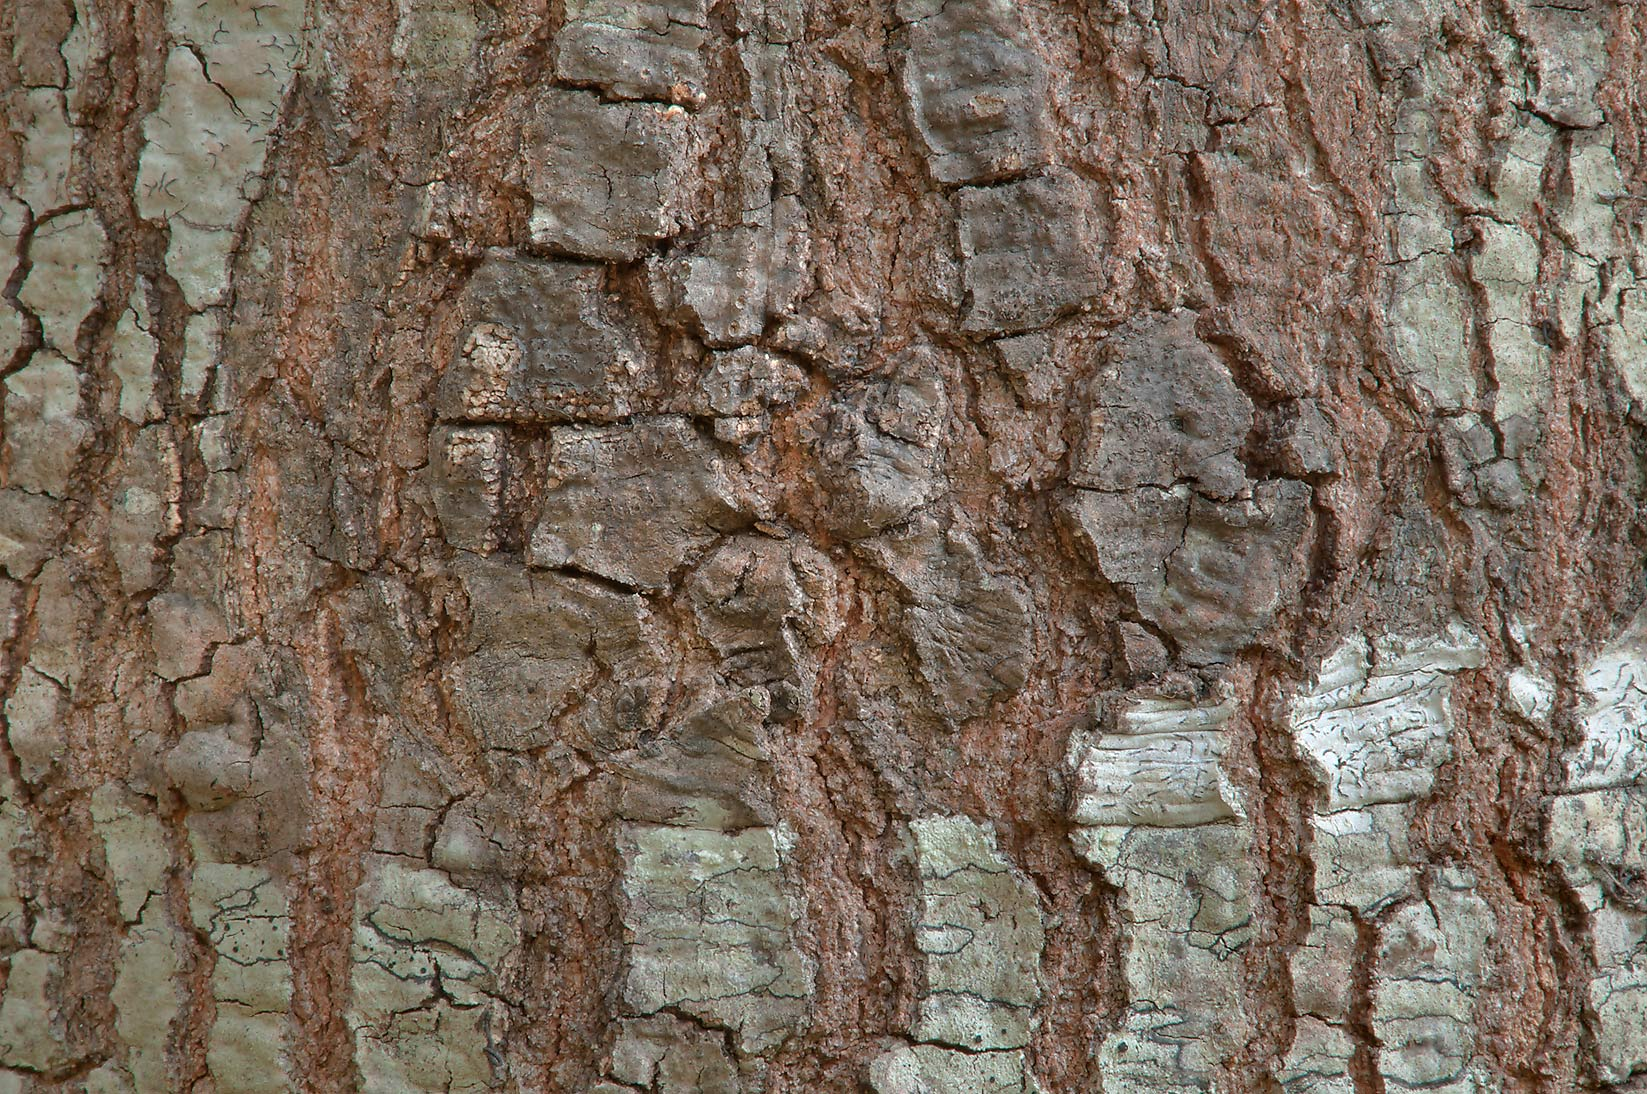 Oak bark in Lick Creek Park. College Station, Texas